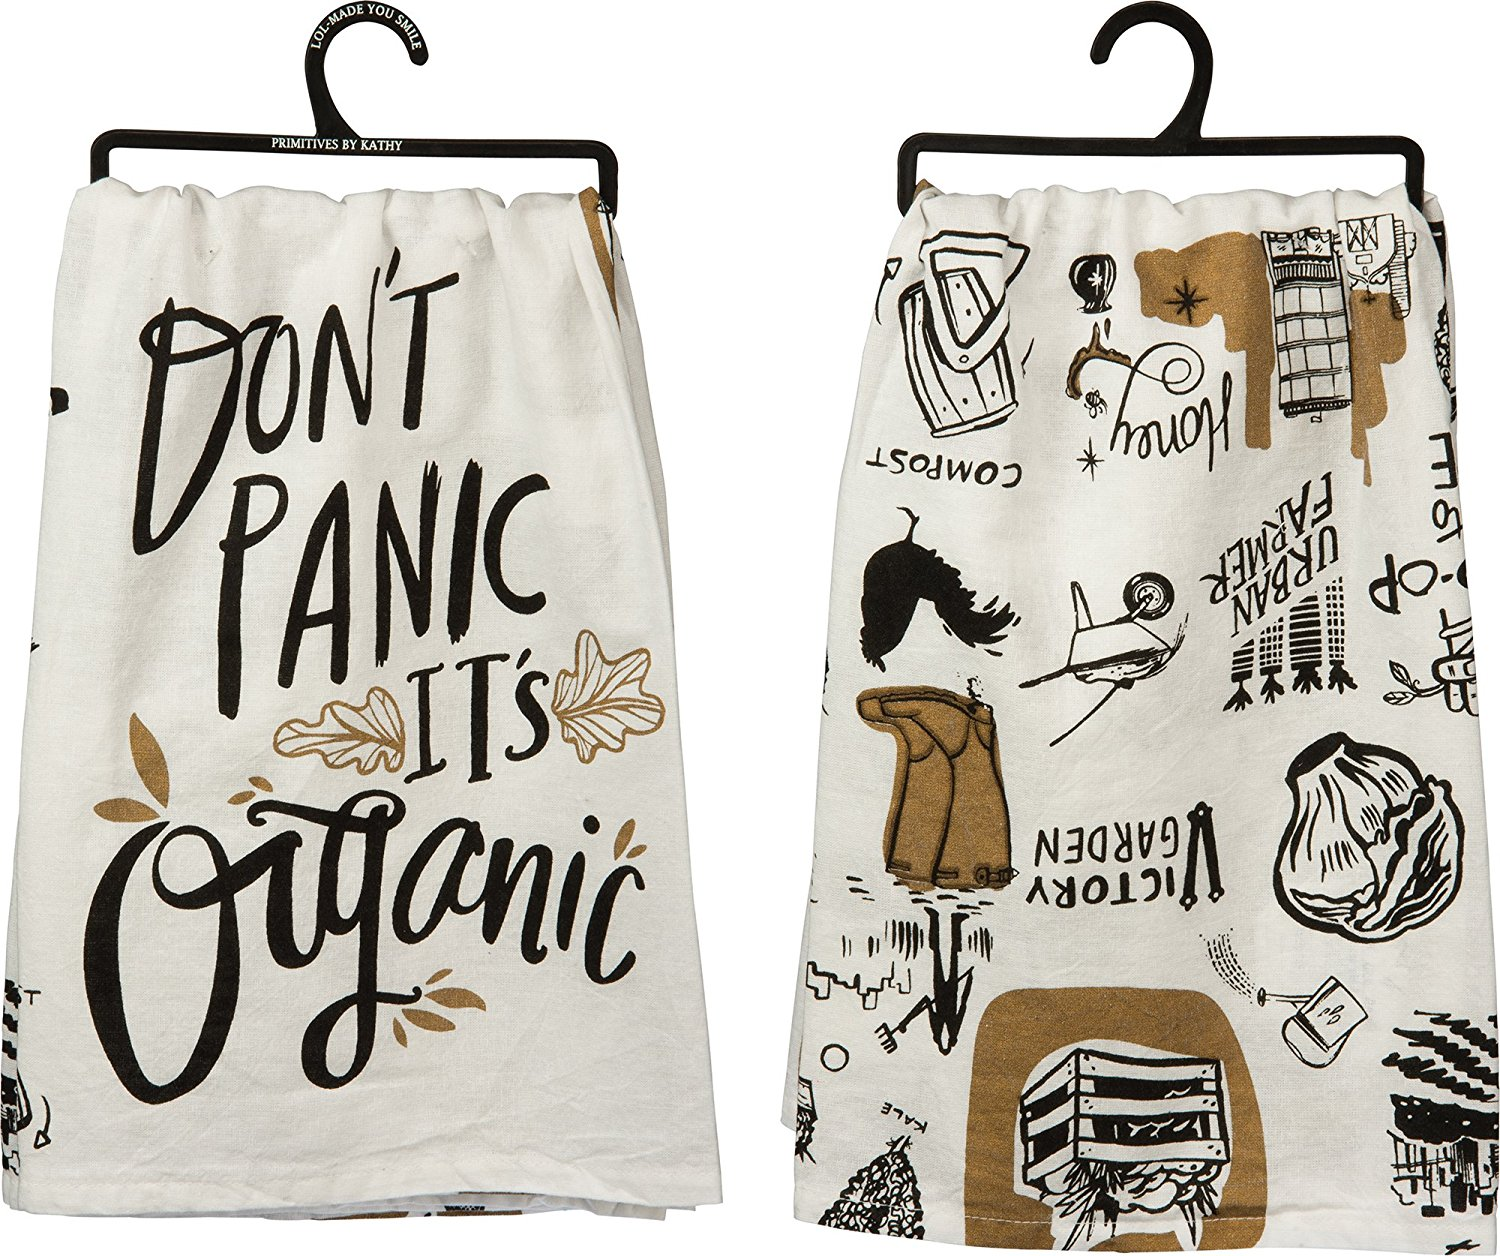 Donu0027t Panic Itu0027s Organic   Cotton Kitchen Towel   28 In, Vintage